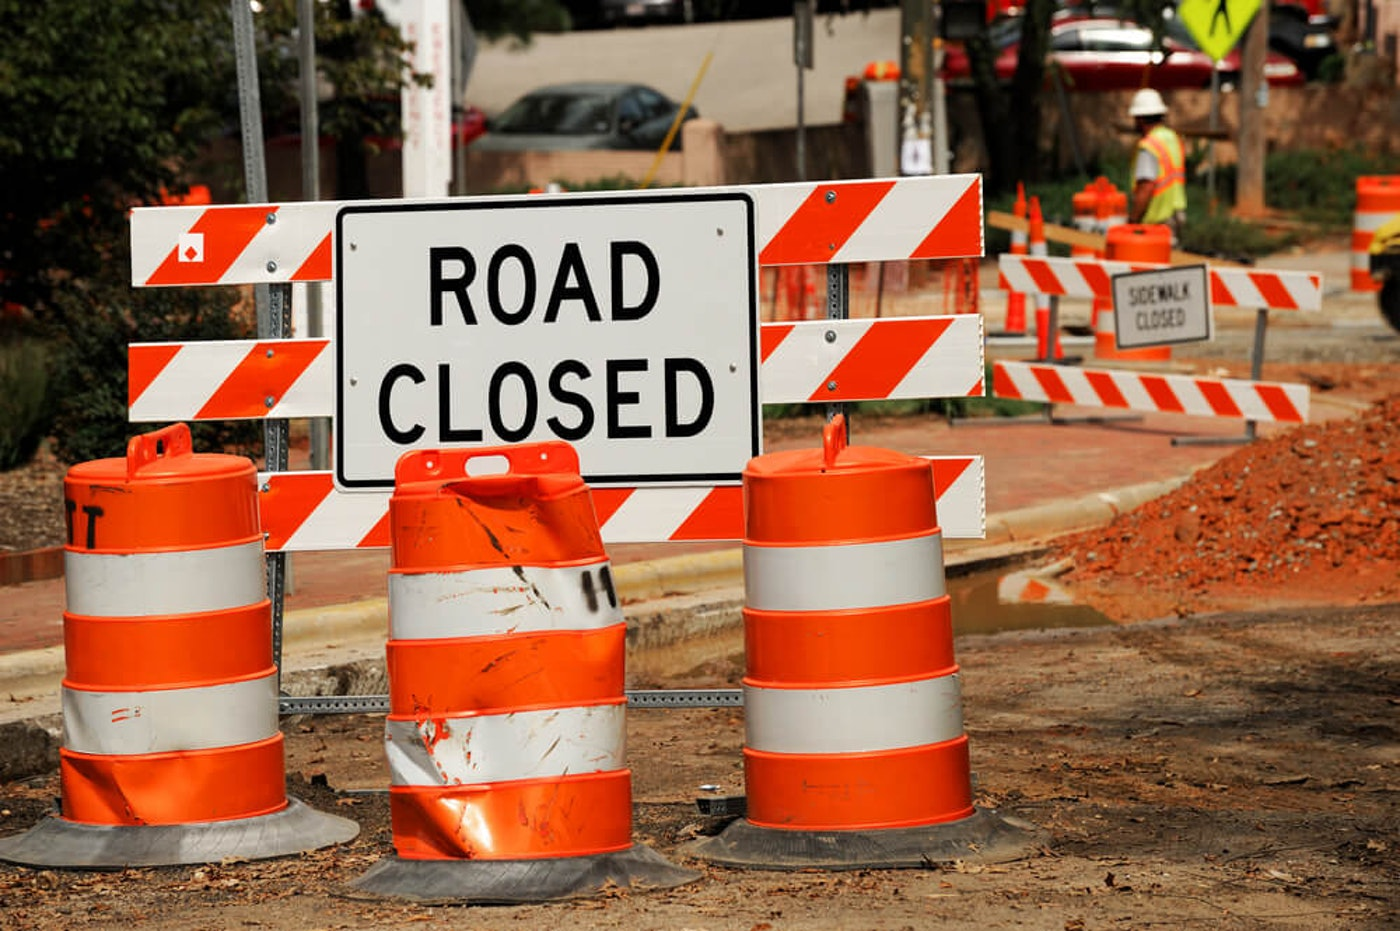 Virginia's Road Budget Got Hit by COVID-19